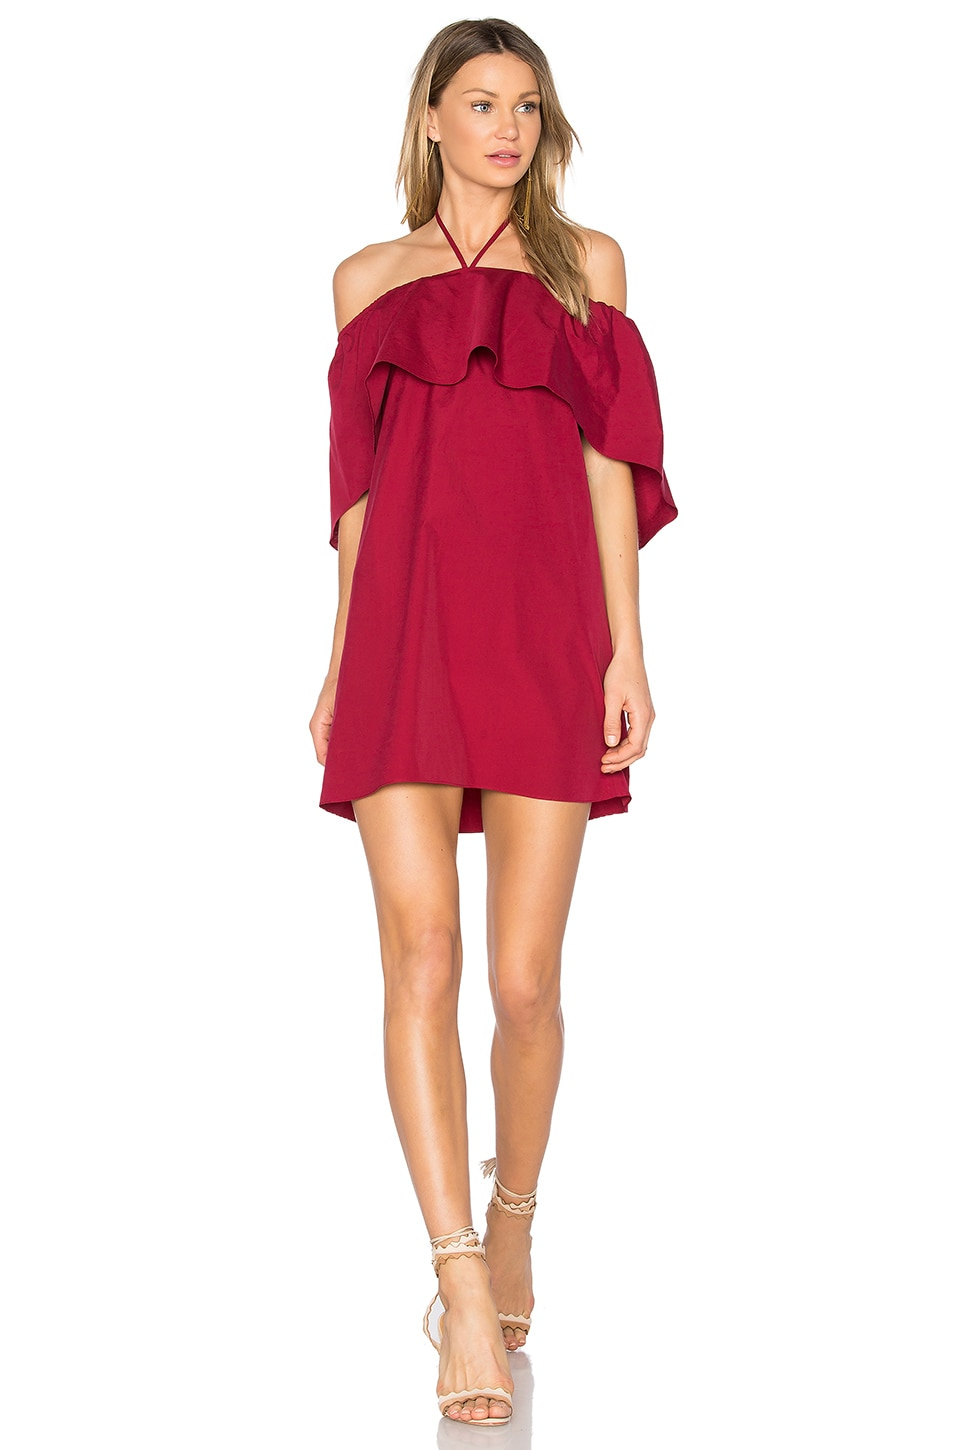 Alice + Olivia Jada Caped Dress in Bright Bordeaux